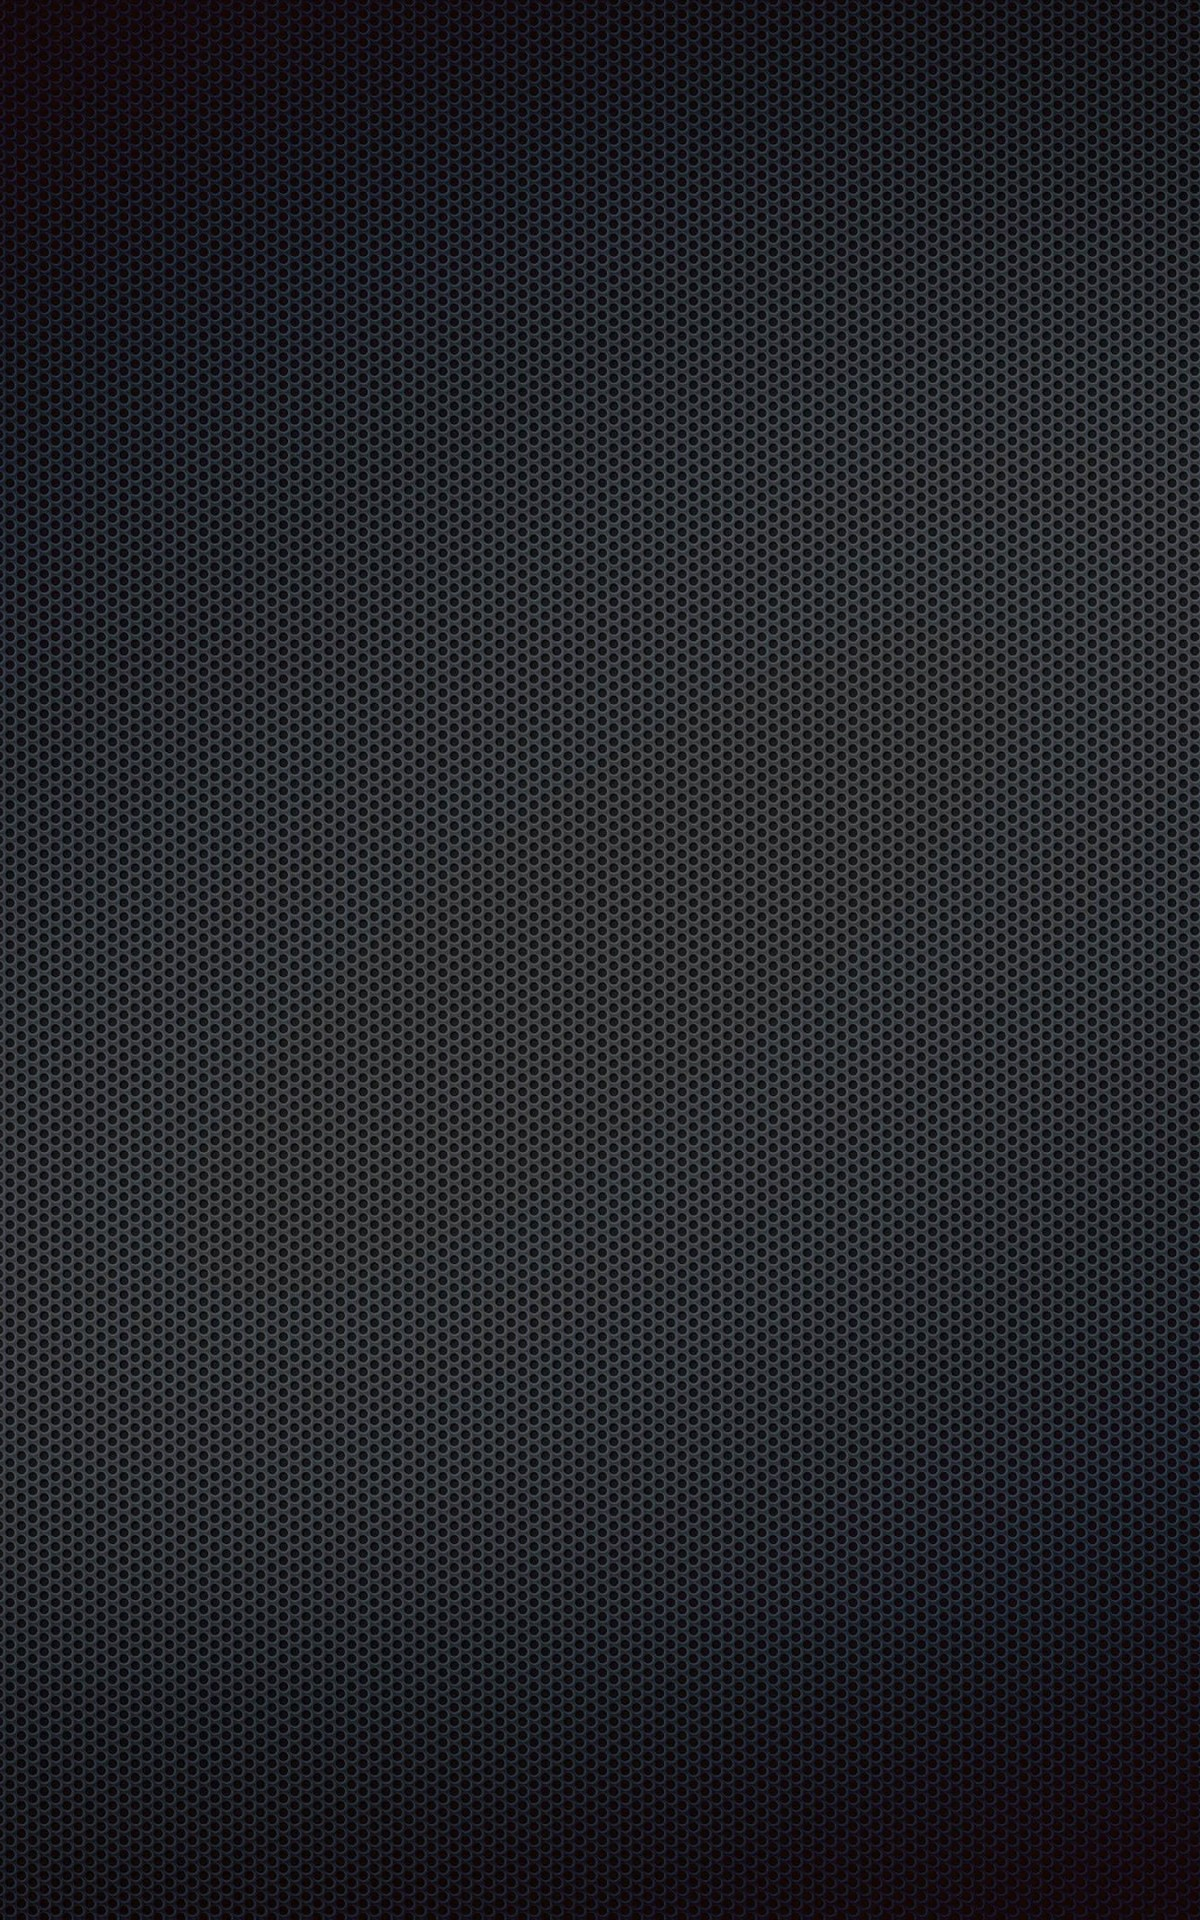 Black Grill Texture Wallpaper for Amazon Kindle Fire HDX